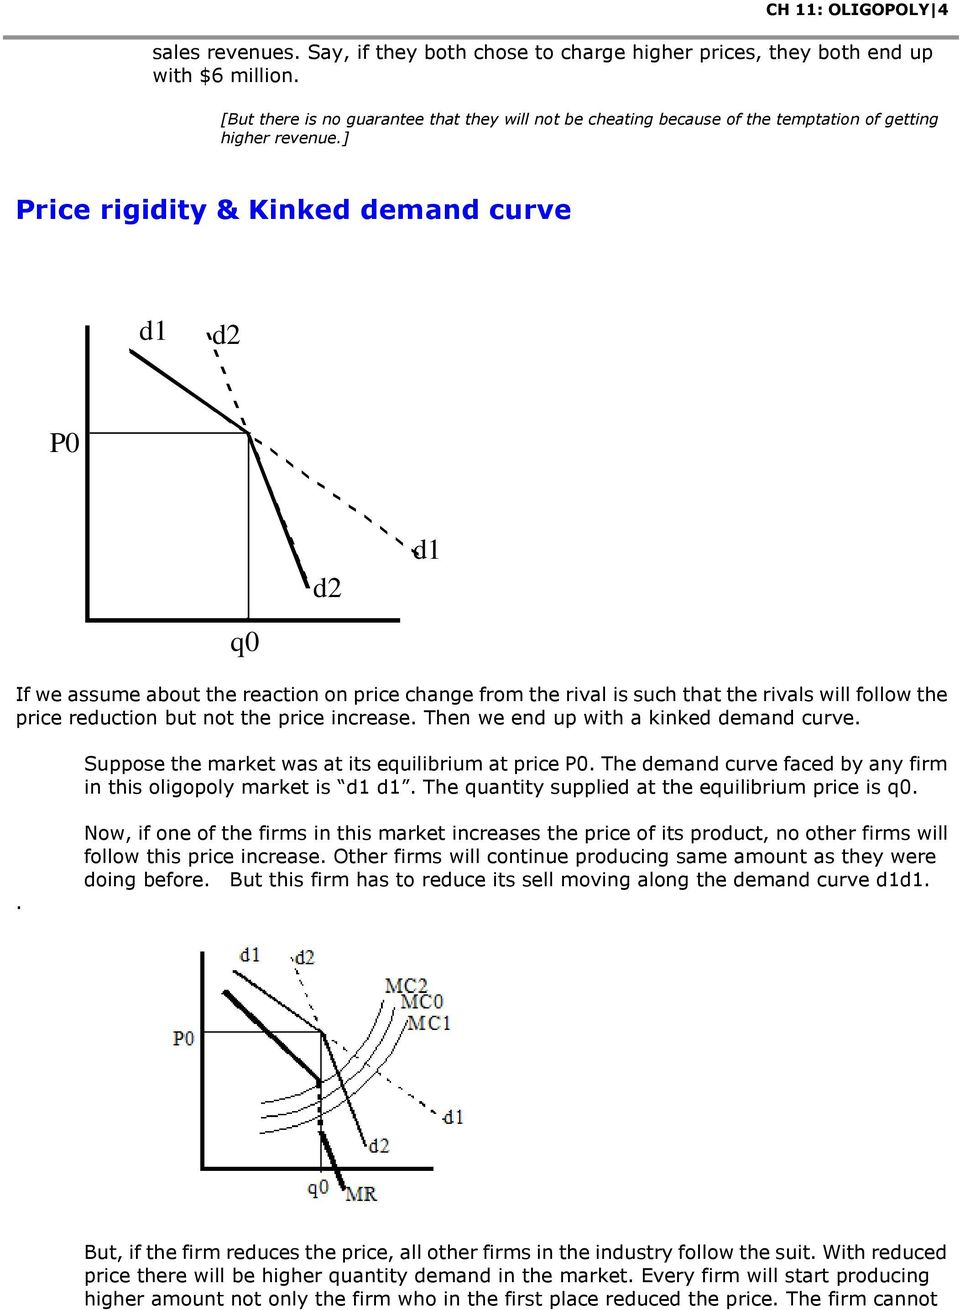 ] Price rigidity & Kinked demand curve d1 d2 P0 d2 d1 q0 If we assume about the reaction on price change from the rival is such that the rivals will follow the price reduction but not the price